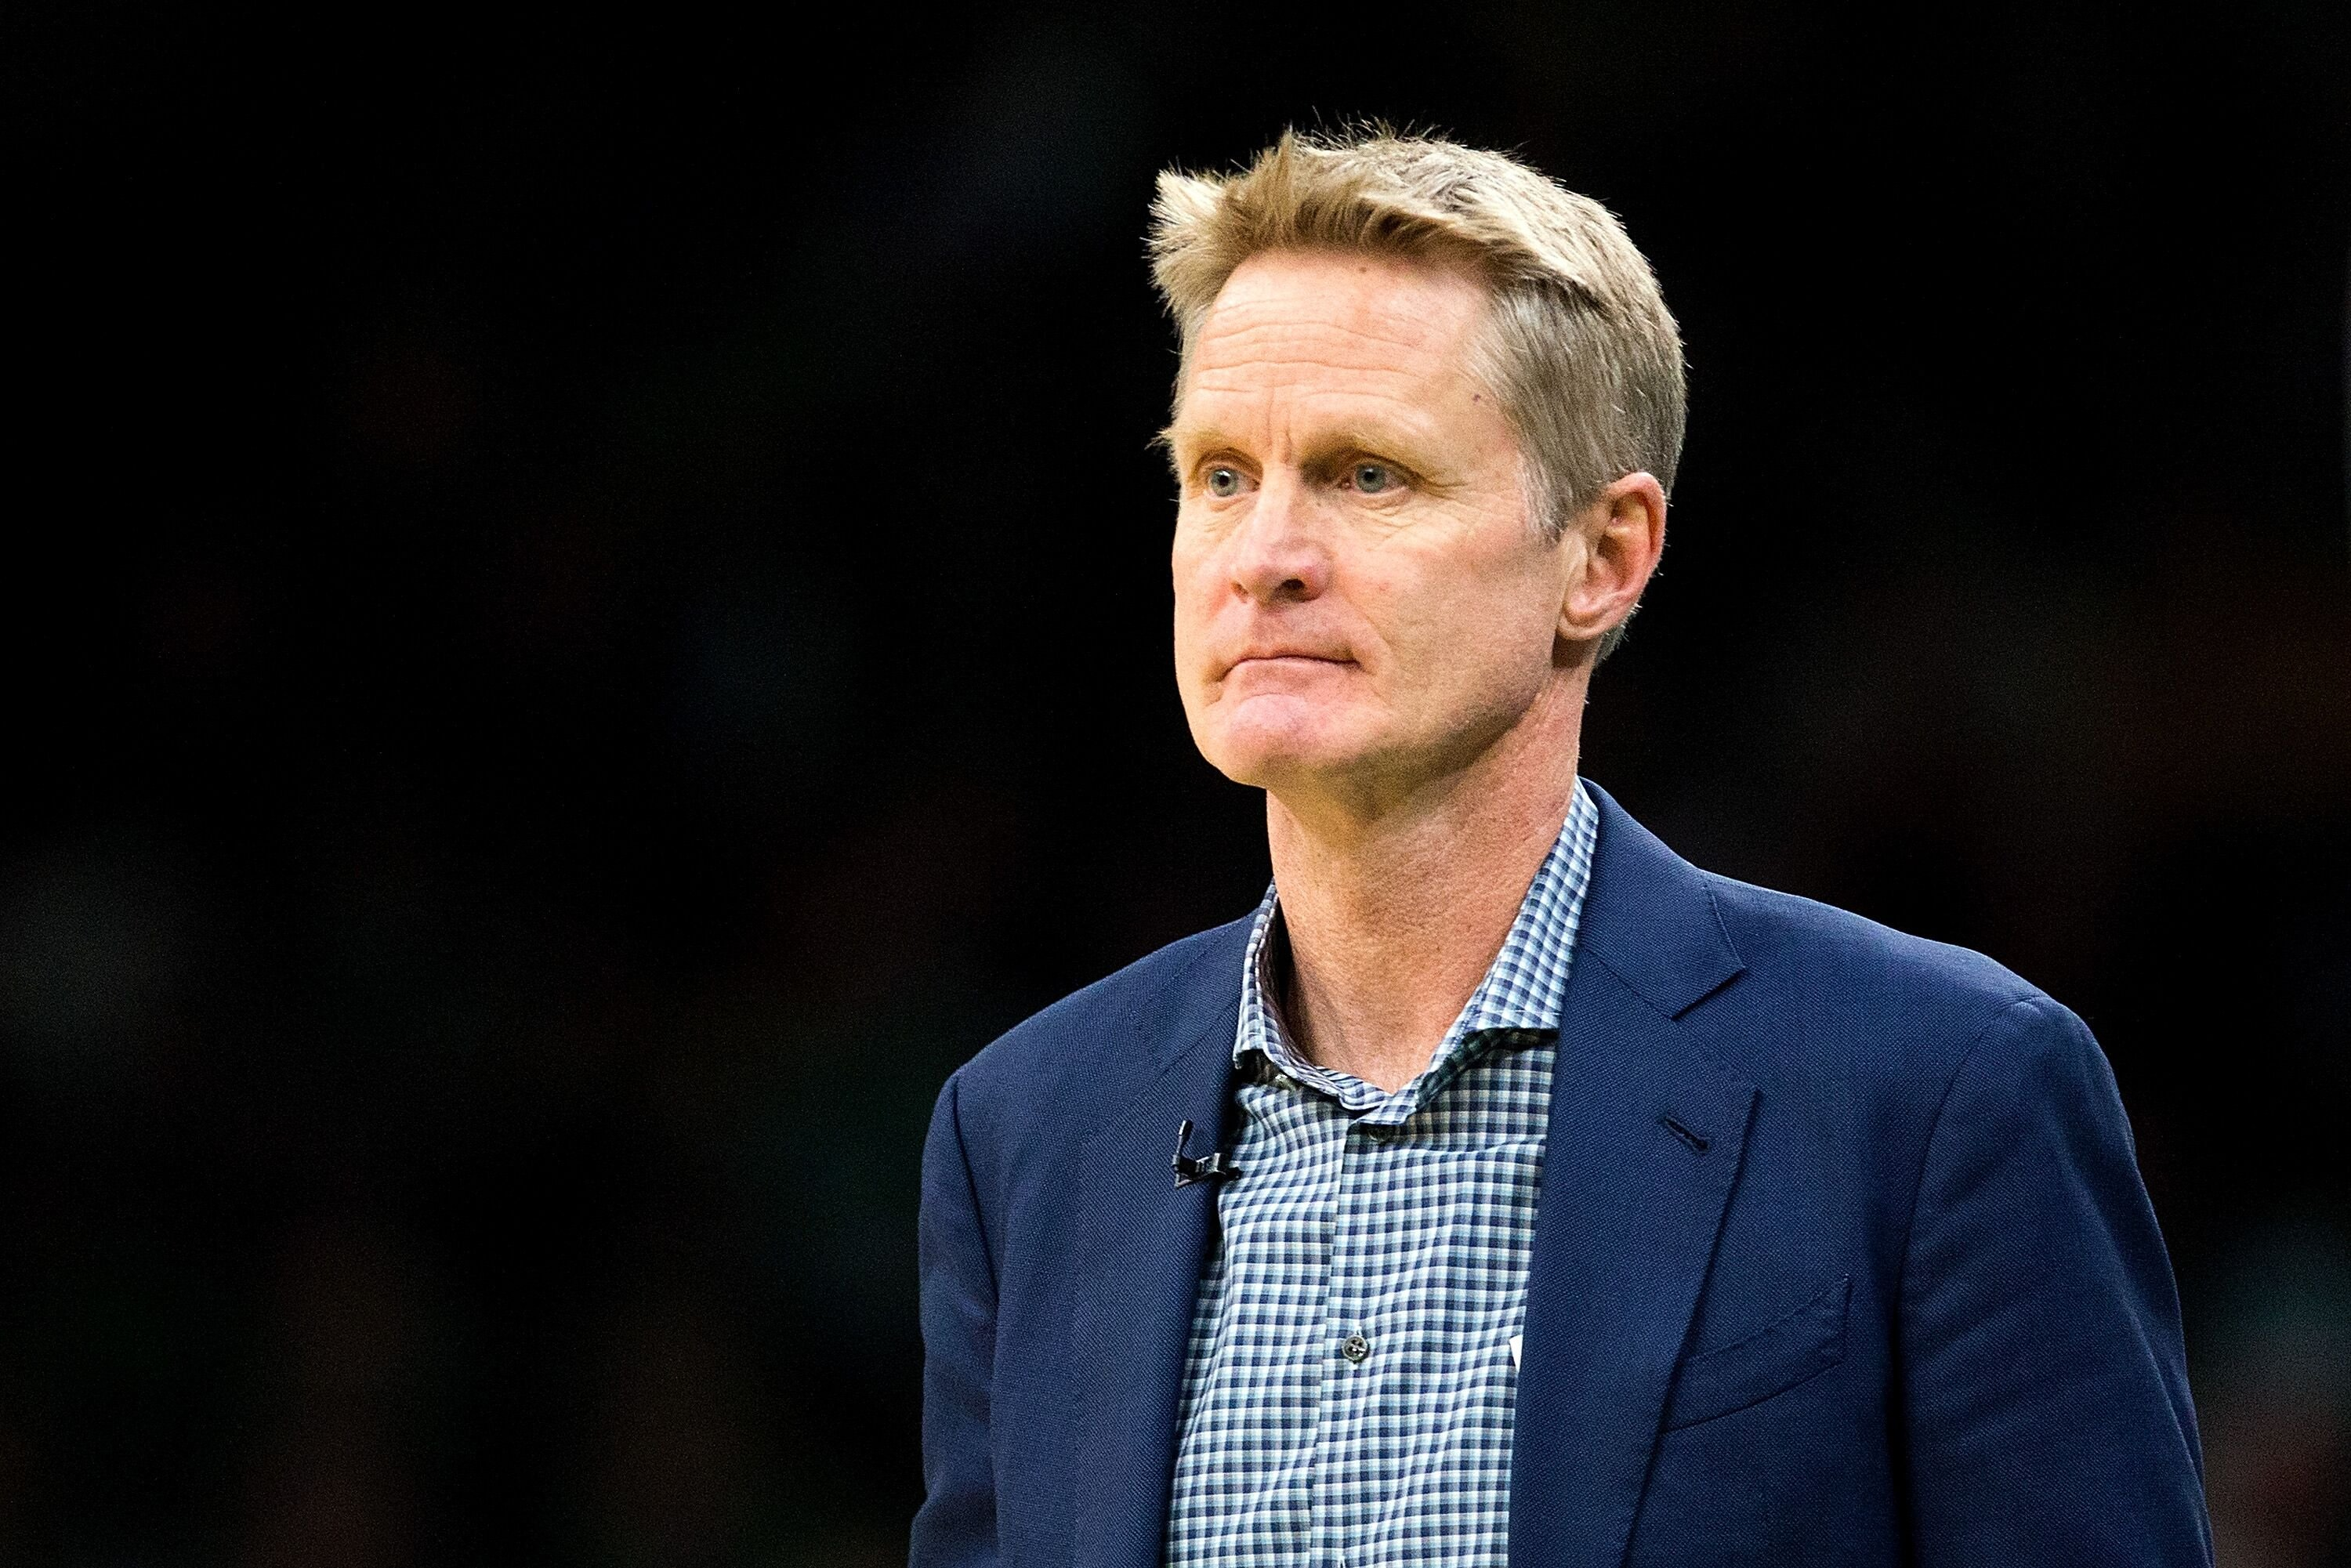 Steve Kerr of the Golden State Warriors at a game against the Boston Celtics in 2019 in Boston | Source: Getty Images